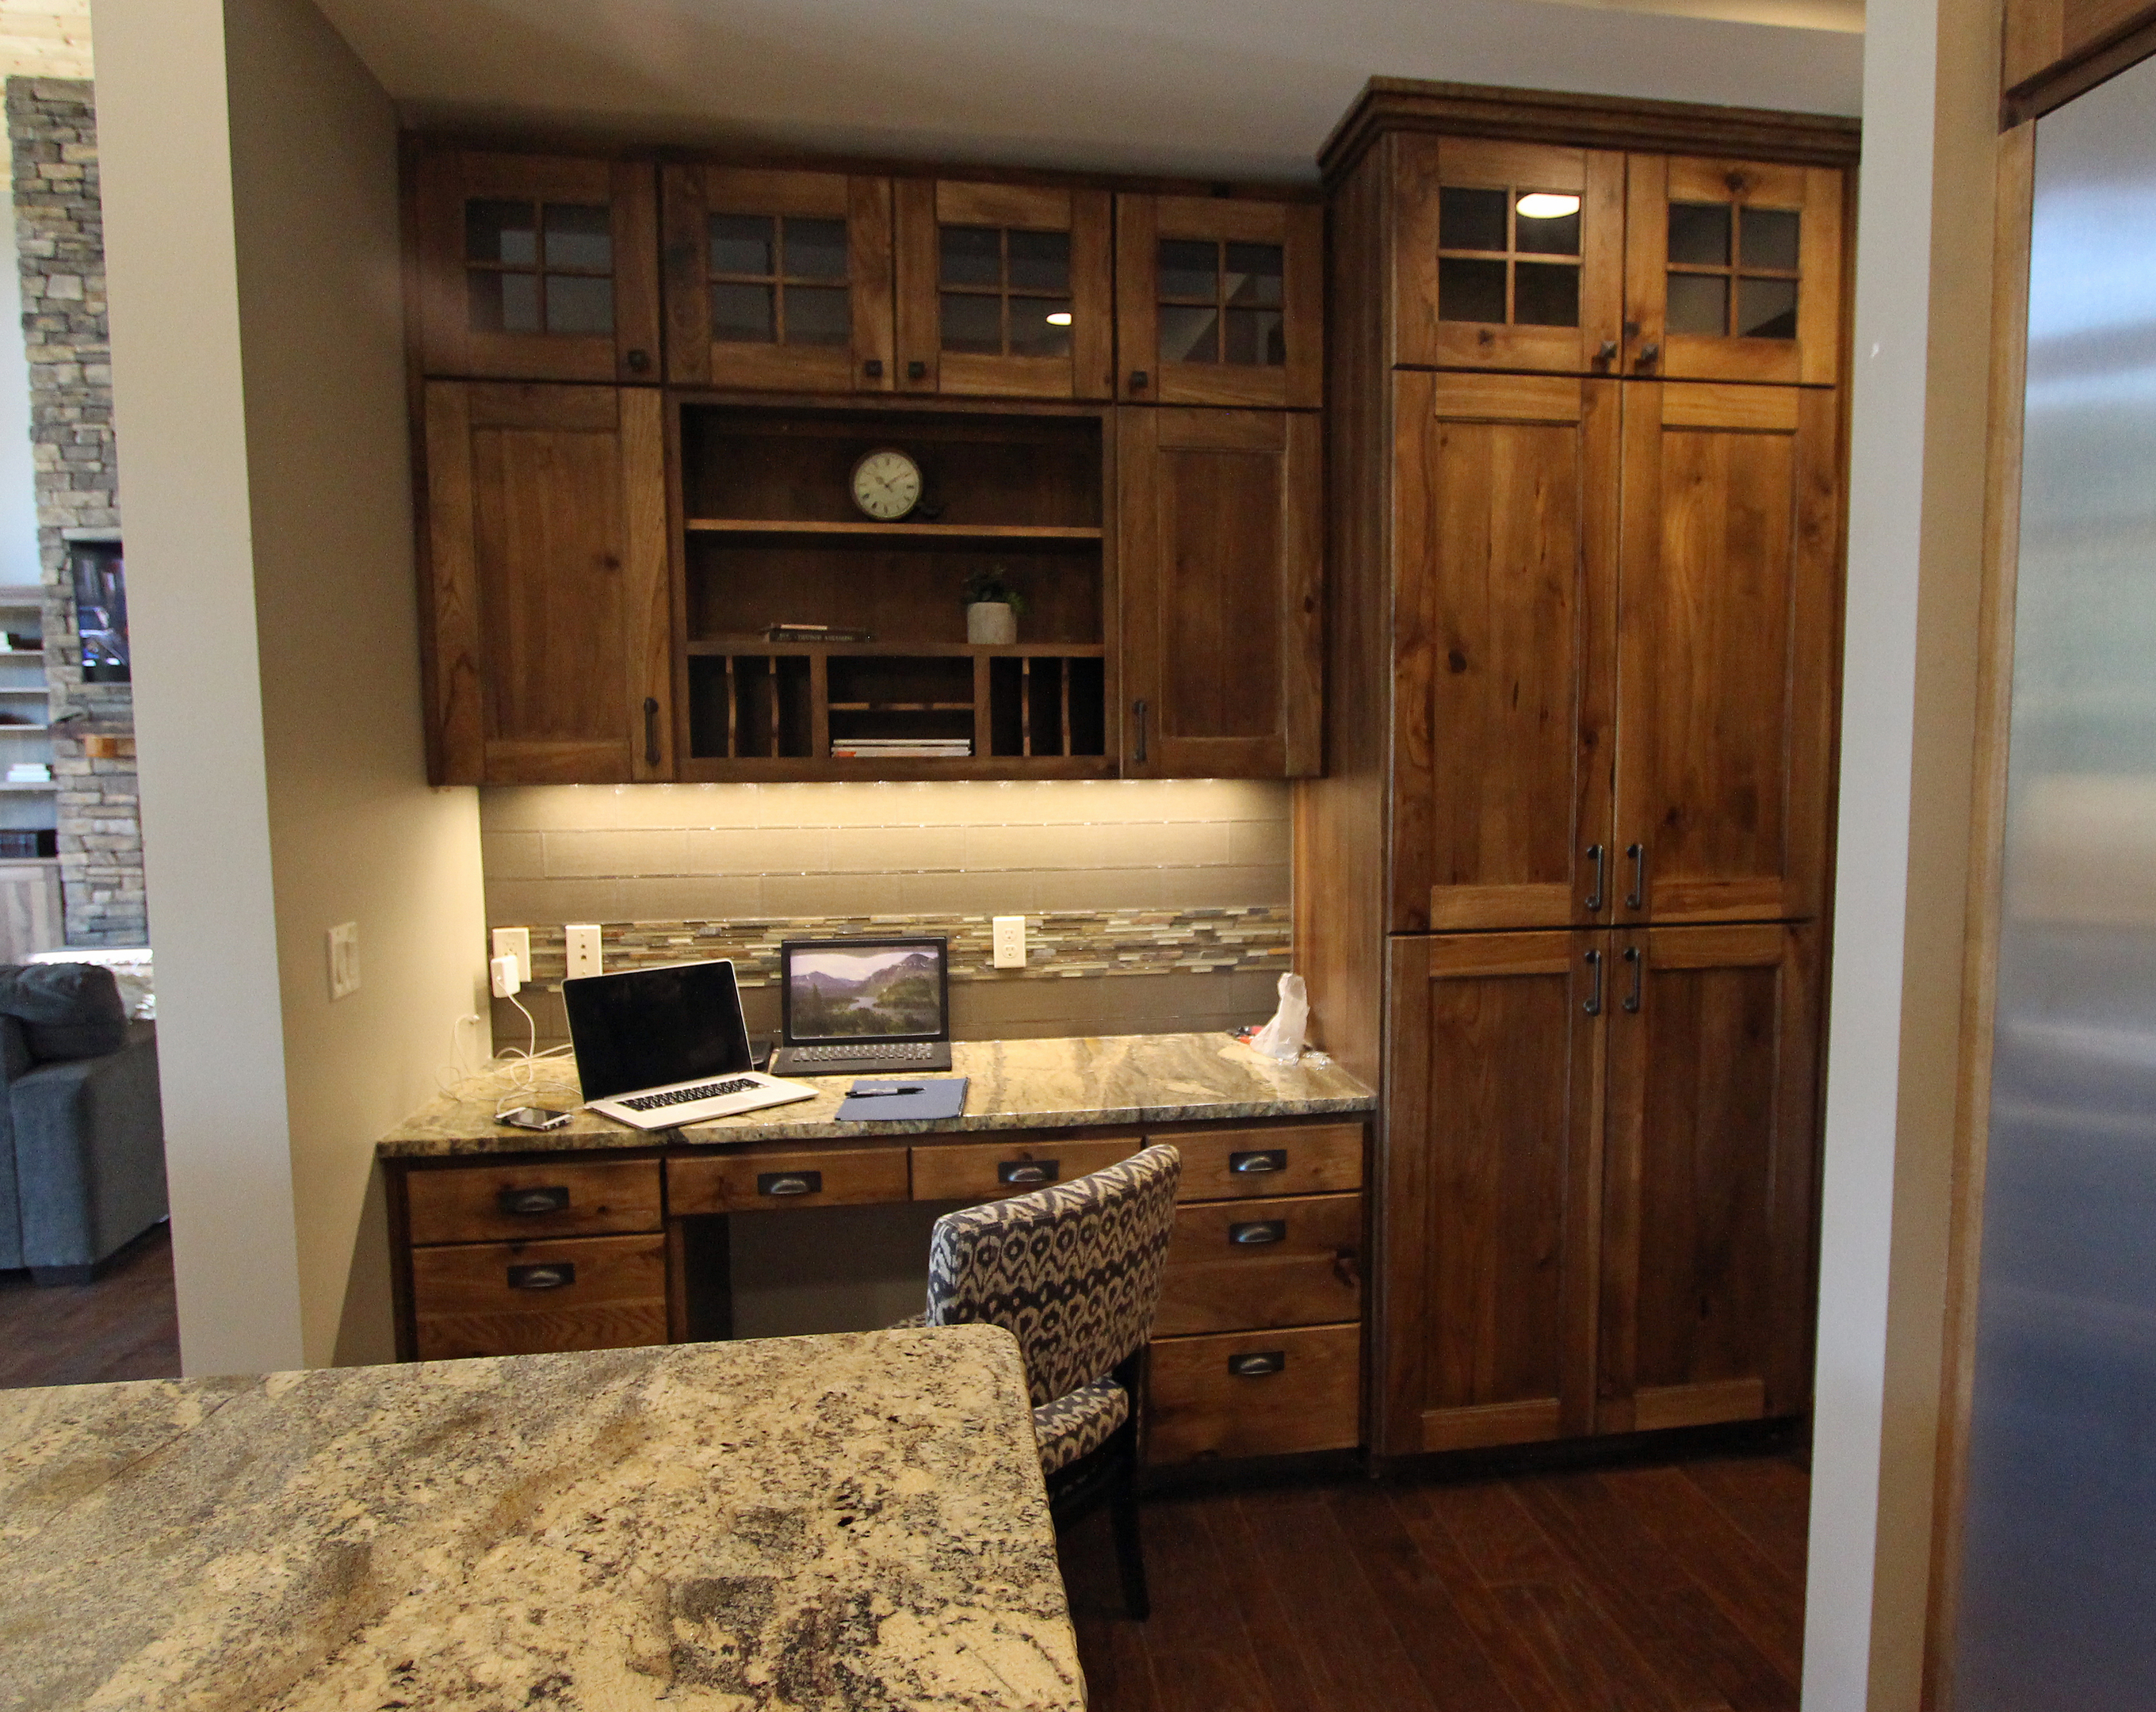 hickory shaker style kitchen cabinets 33 x 22 sink affordable custom showroom